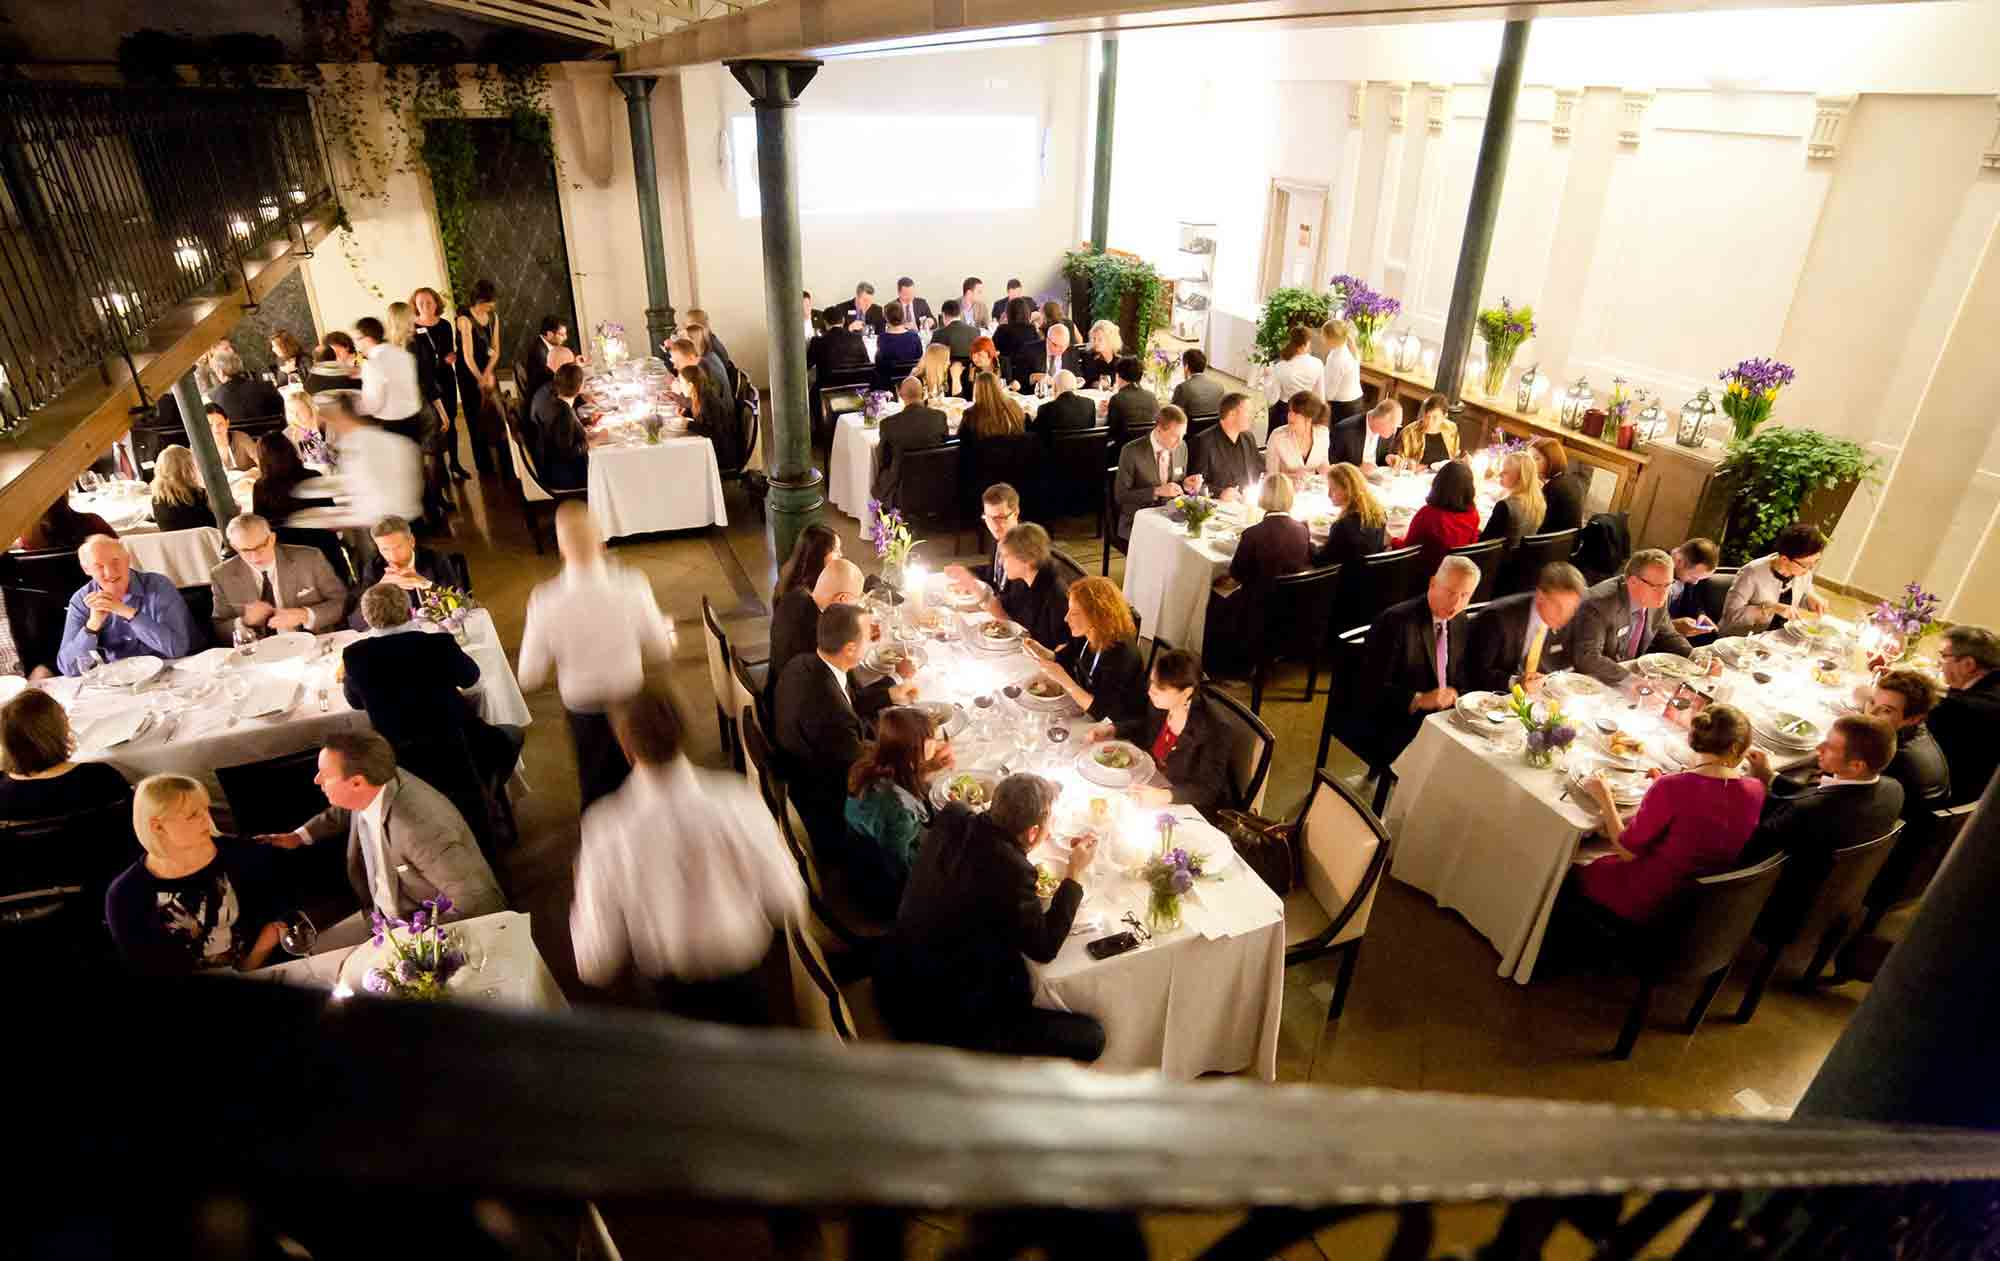 Business people eating dinner at private event special diets